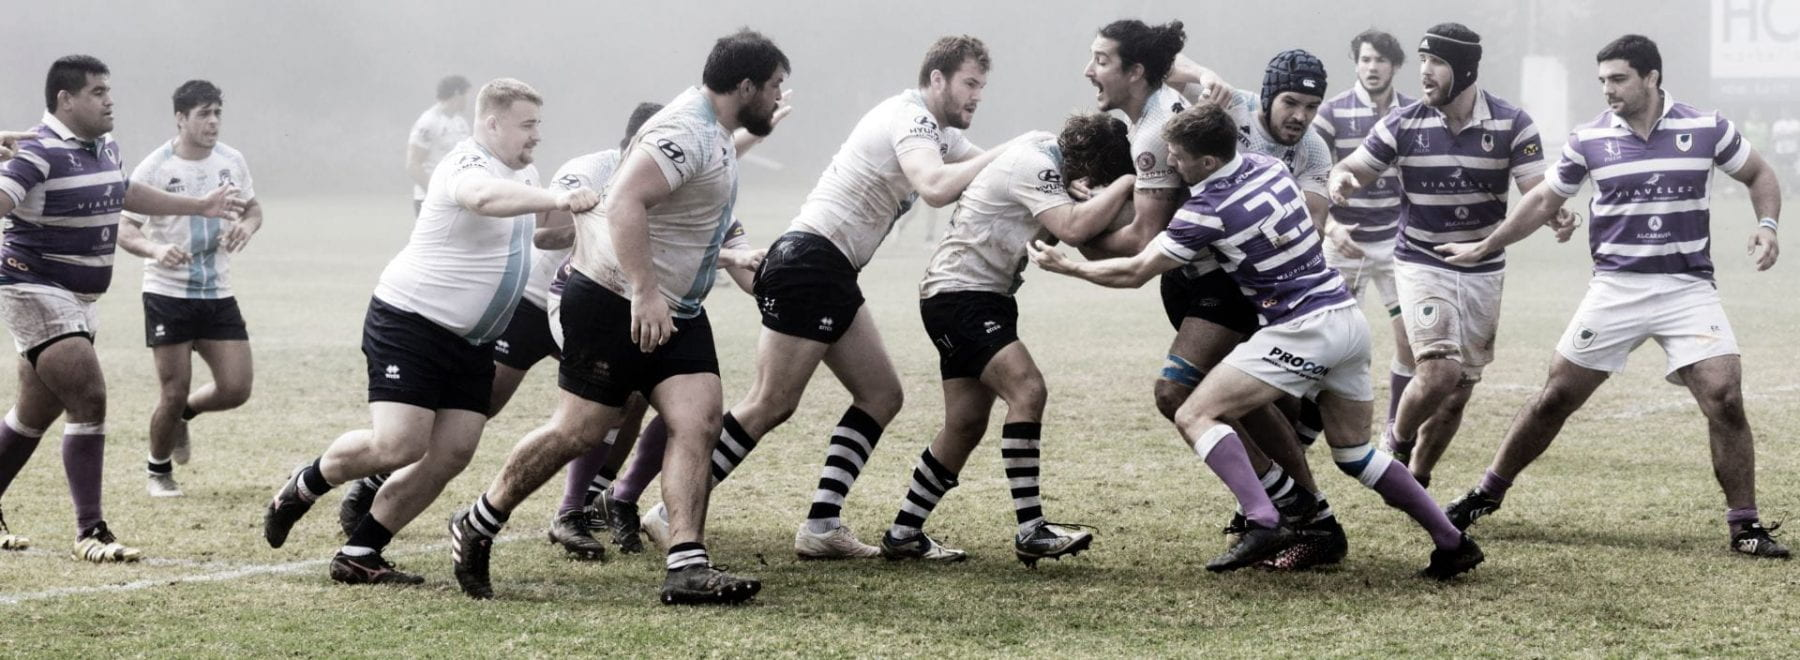 tackling in men's rugby